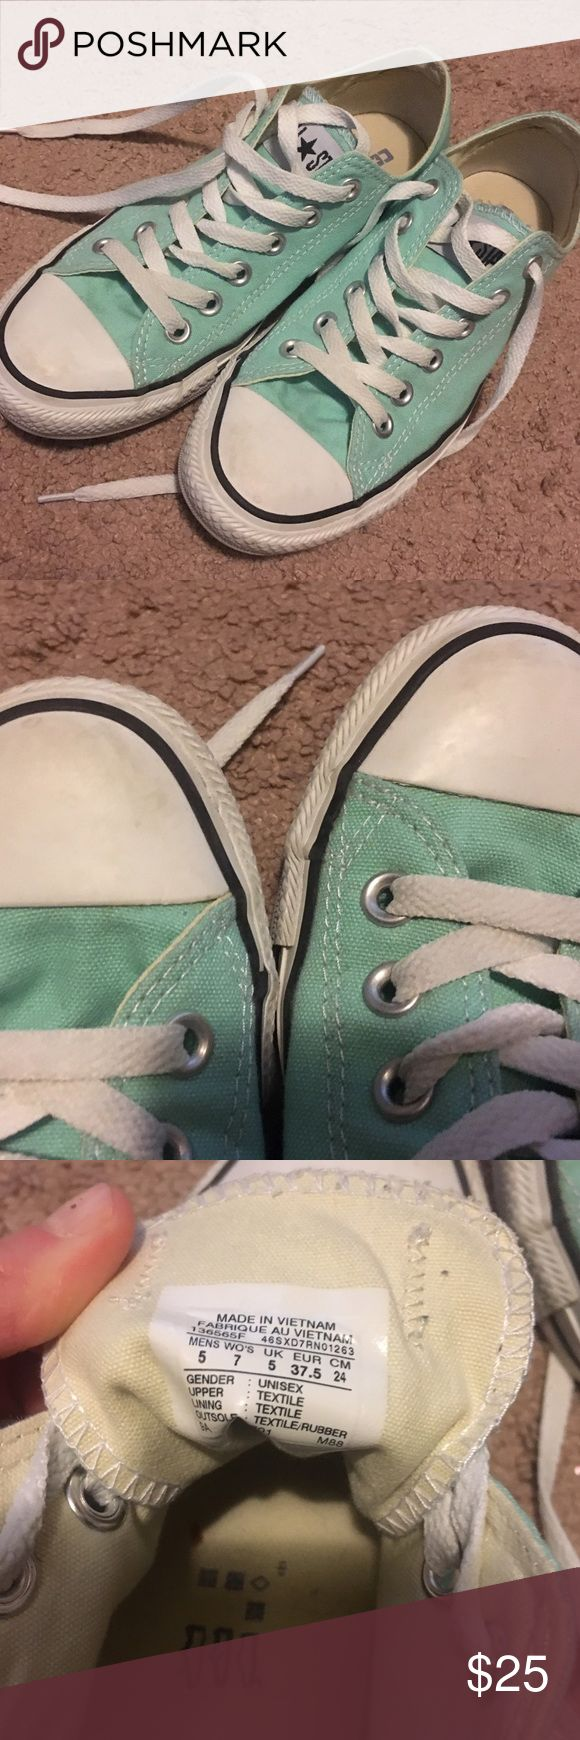 Mint Converse shoes Mint low top (below the heel) shoes! Are lightly worn but do have some scuffs on the front (shown in second photo) Converse Shoes Sneakers